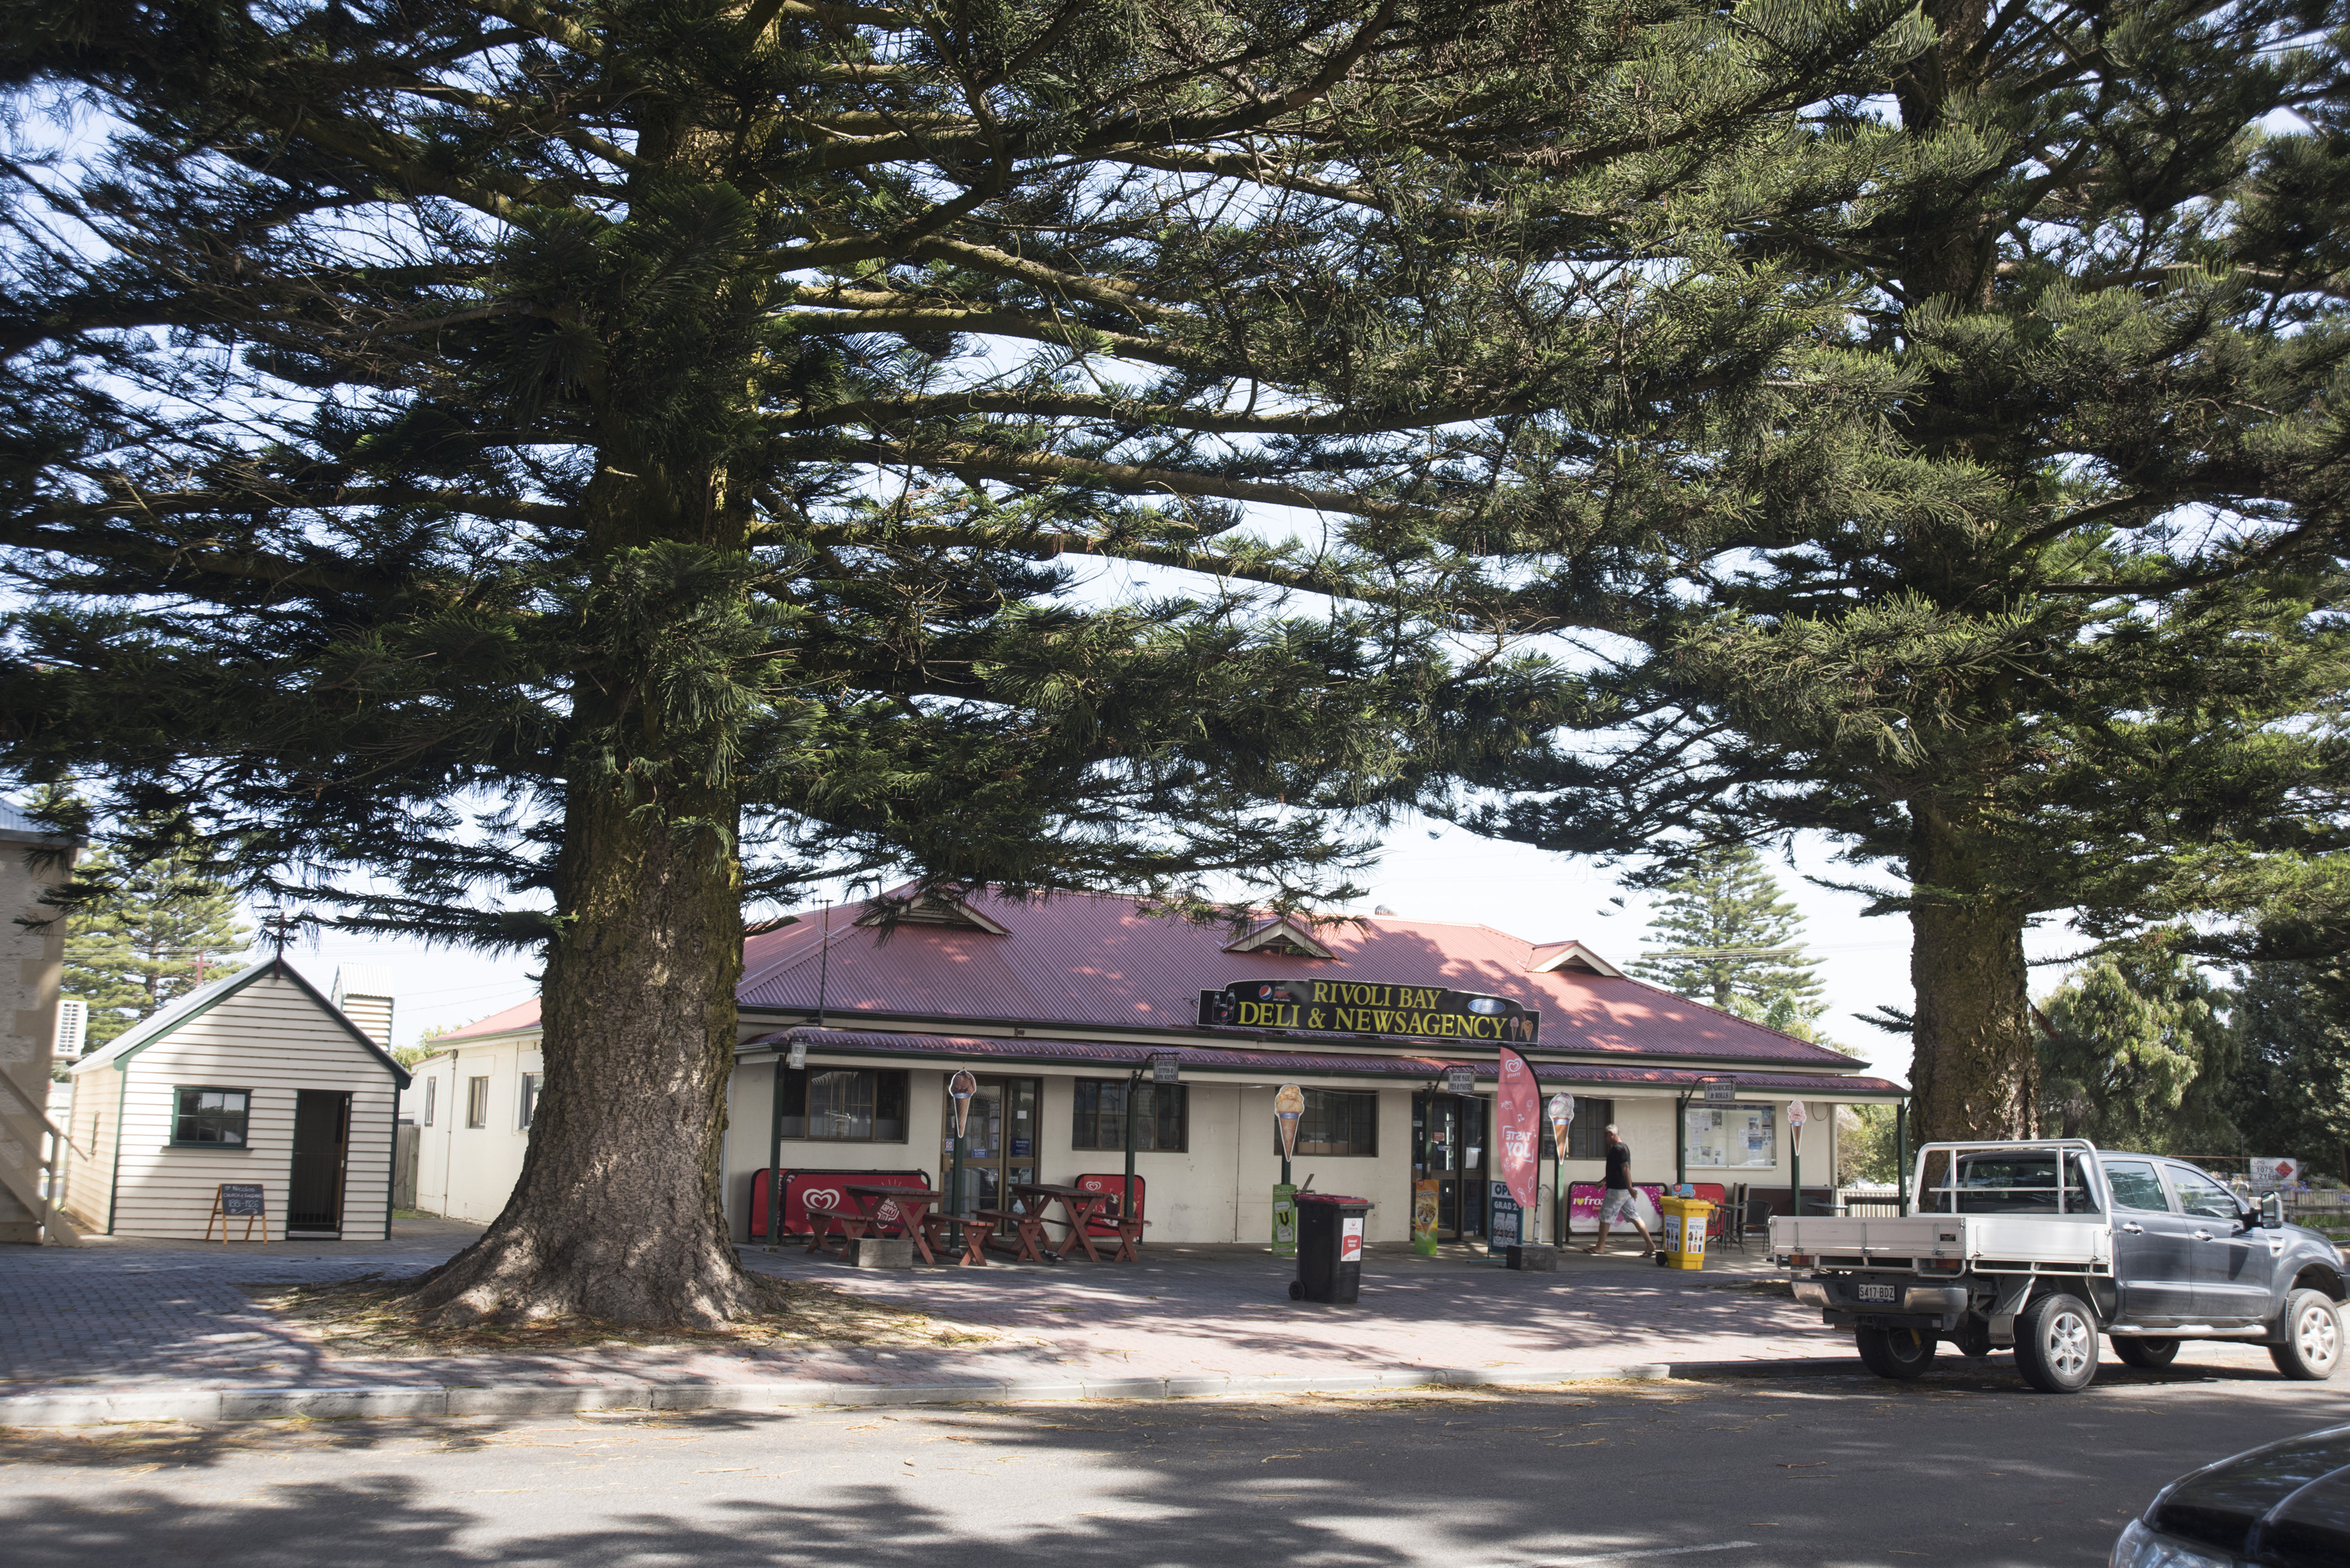 Historic heritage buildings in Beachport, South Australia in a street scene with quaint old store between two large pine trees